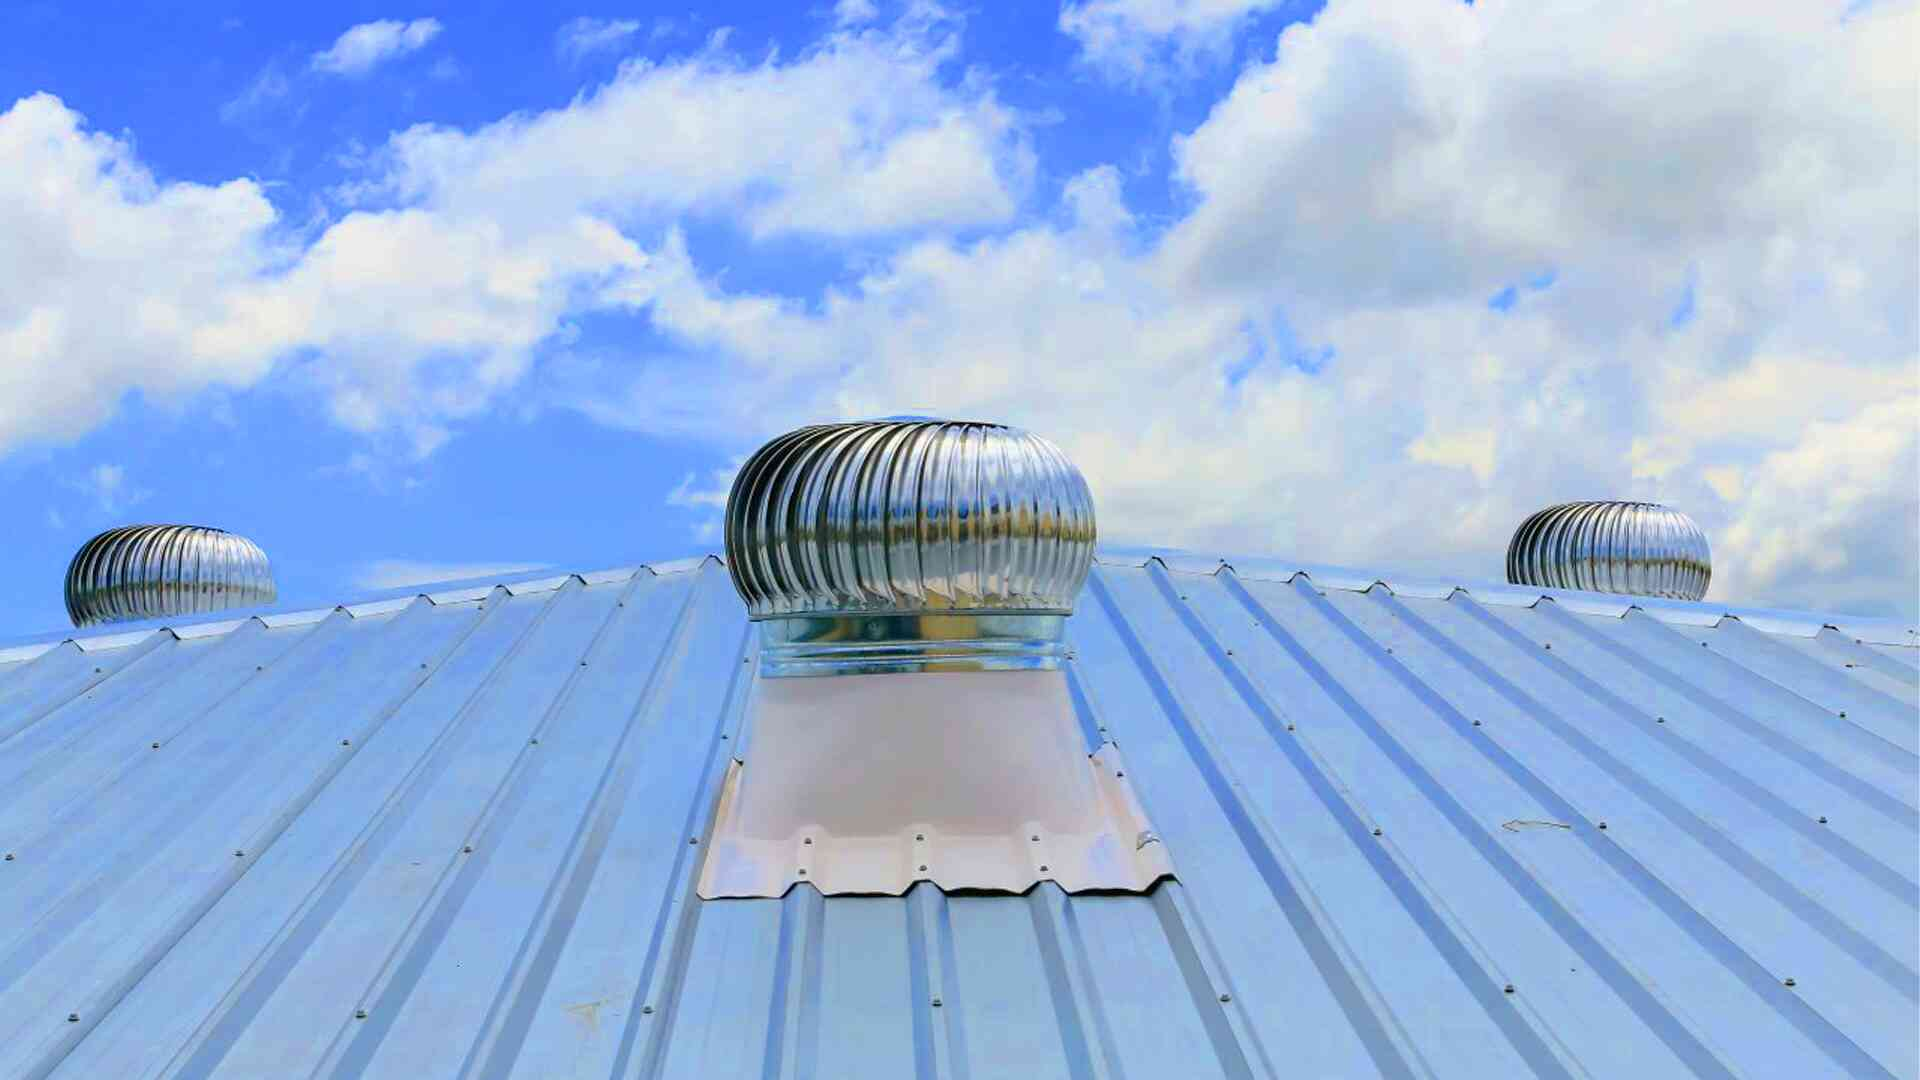 commercial whirlybirds roof ventilation